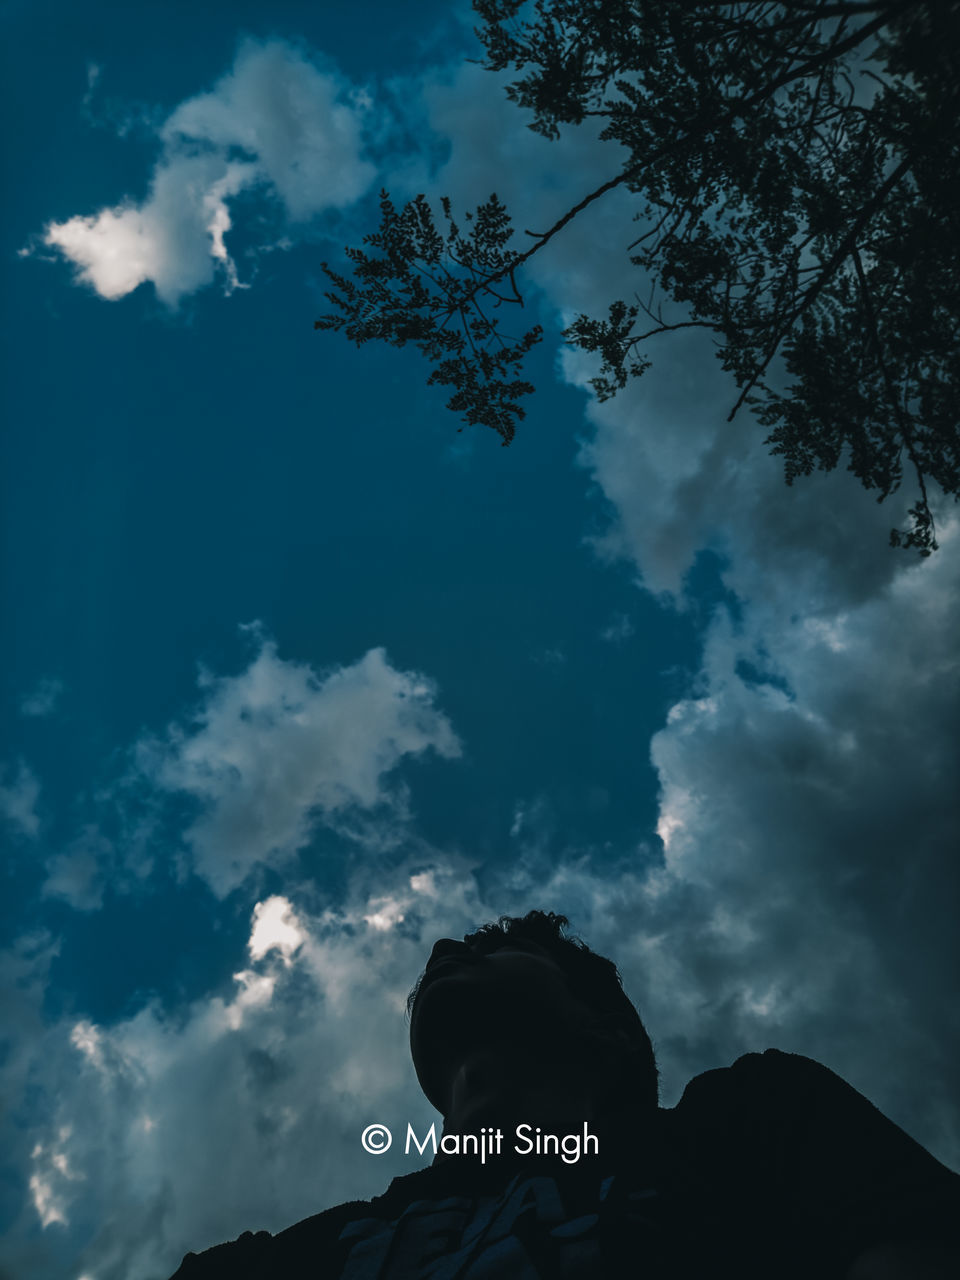 LOW ANGLE VIEW OF SILHOUETTE MAN AGAINST TREES